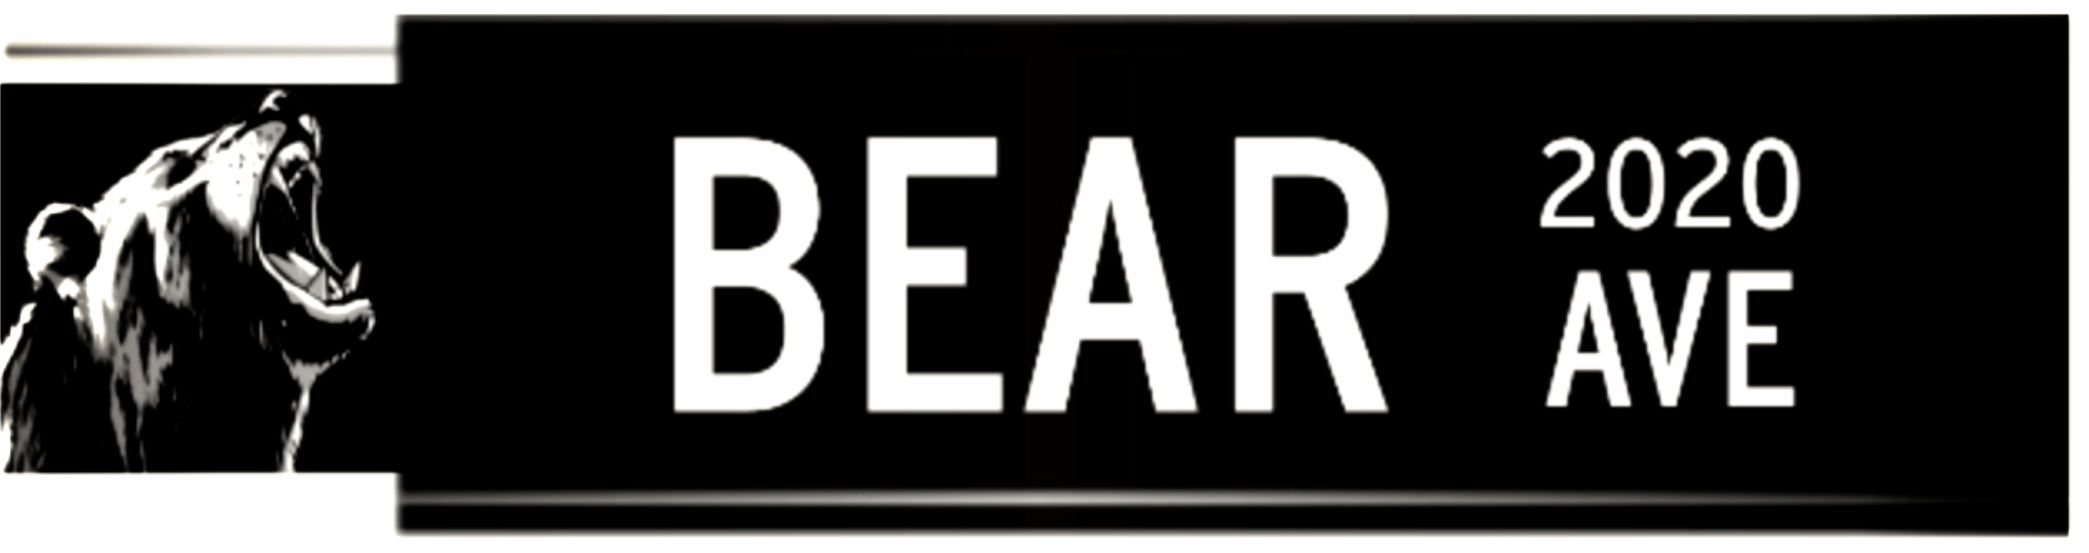 Bear Avenue™: No Image